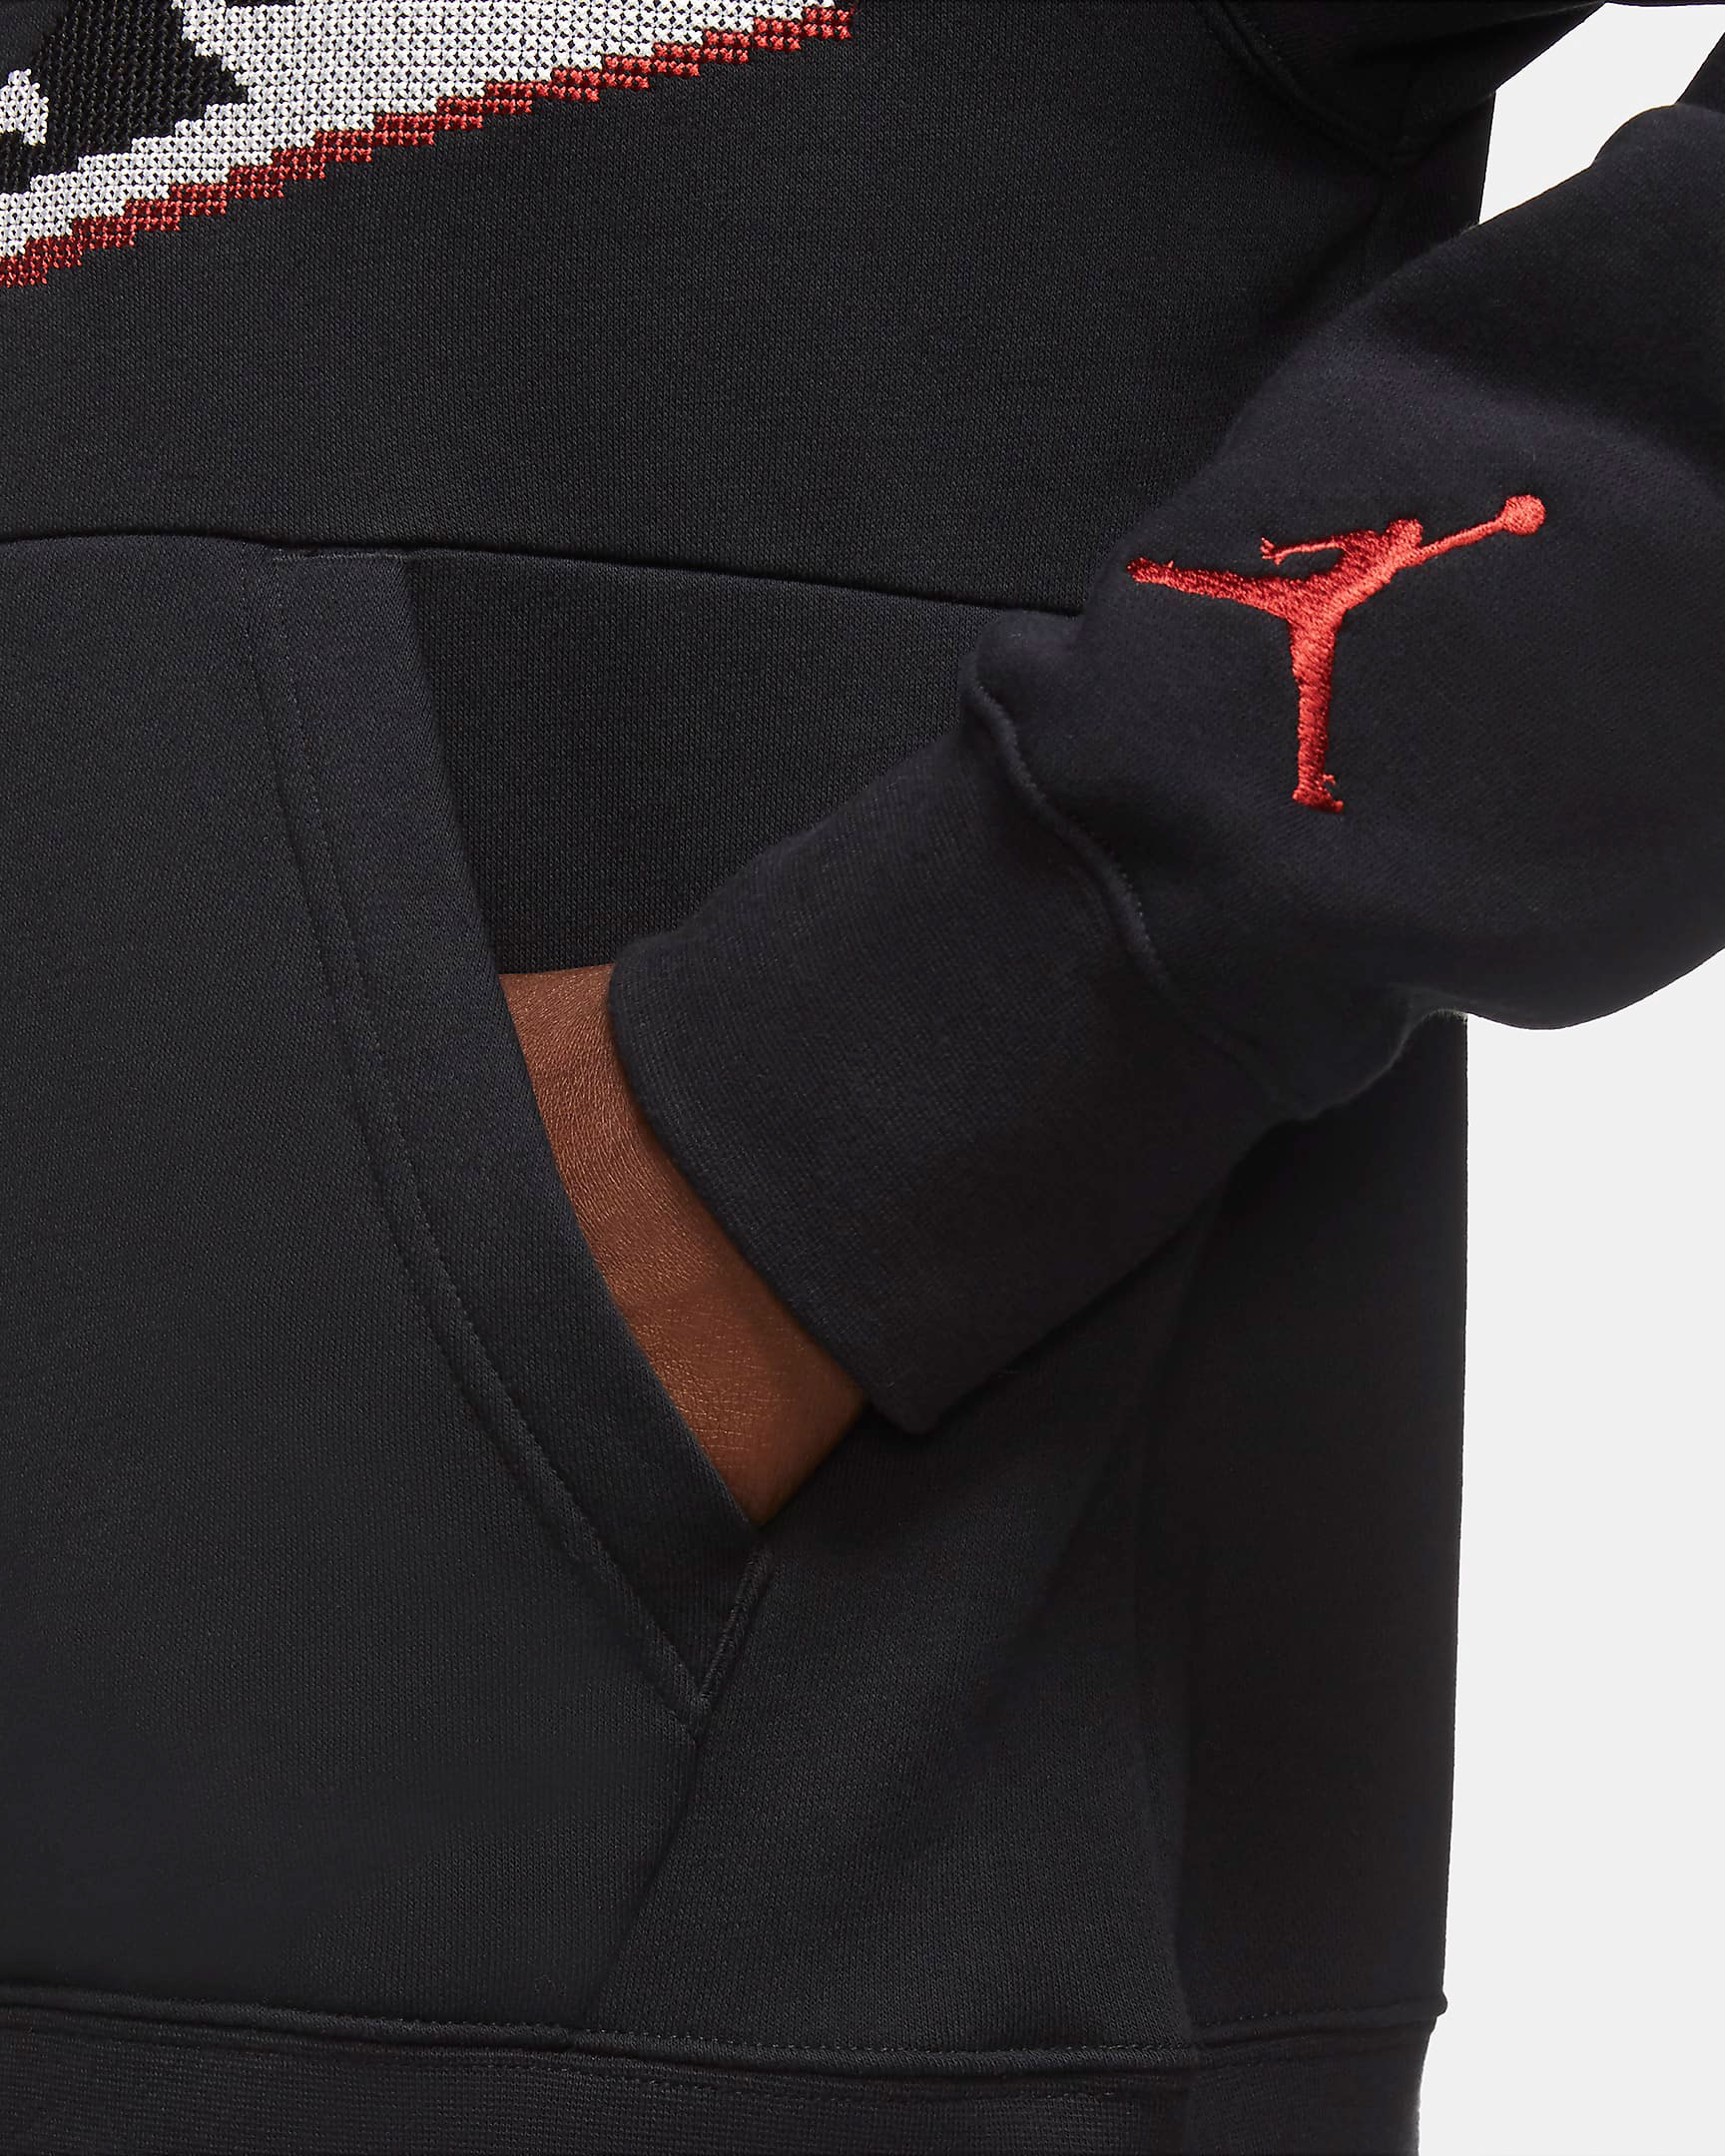 jordan-aj1-knit-stocking-holiday-hoodie-black-3